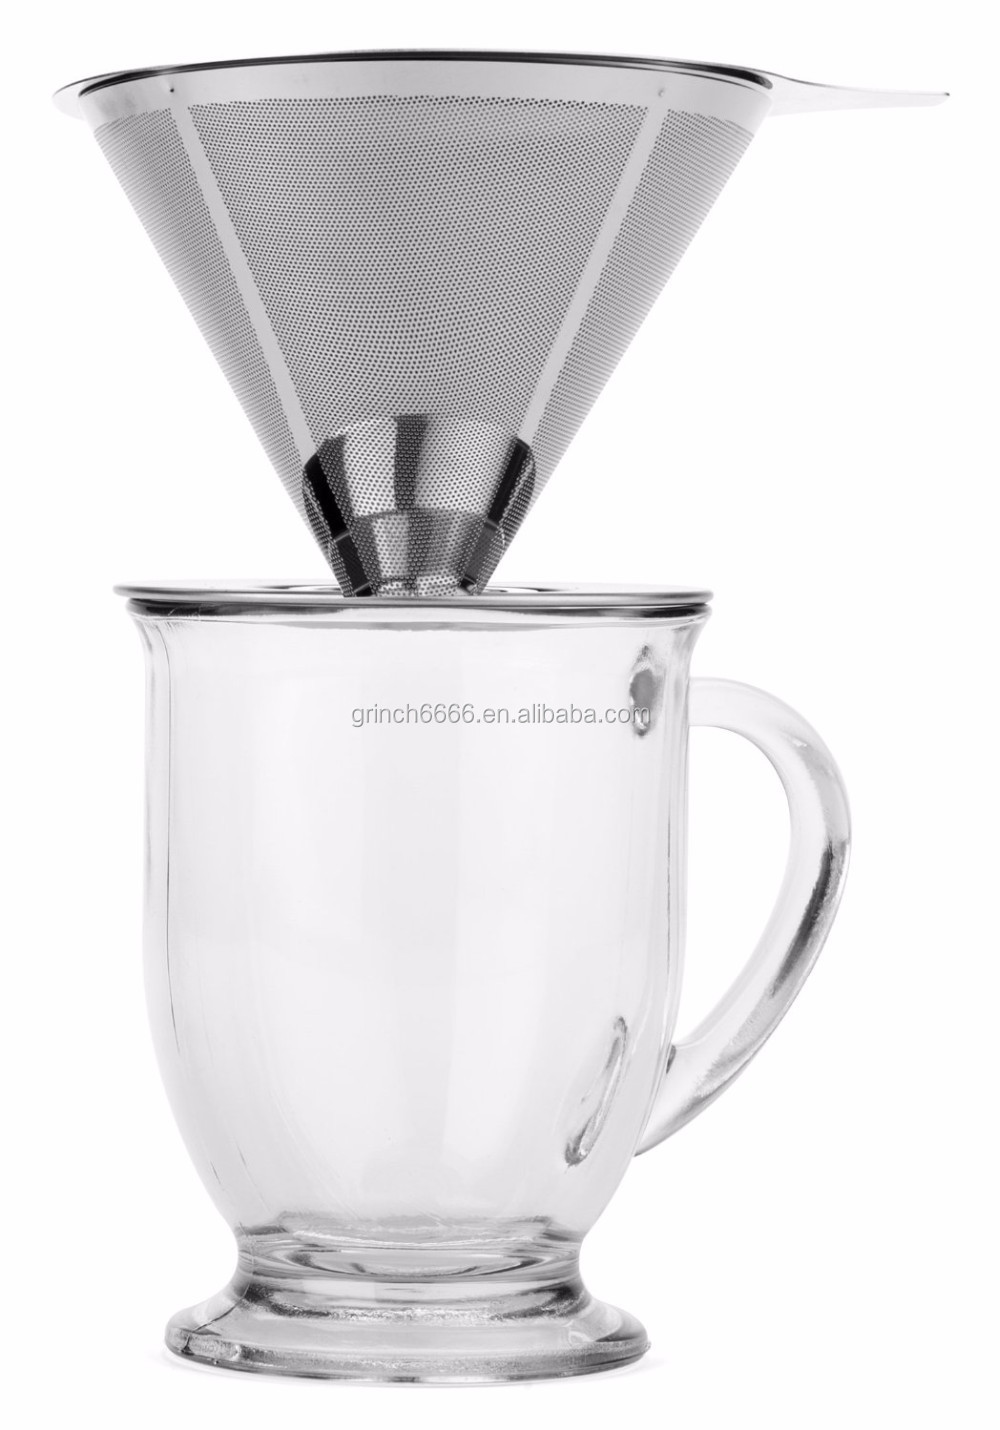 One Cup Coffee Maker With Reusable Filter : Paperless Pour Over Coffee Dripper - Stainless Steel Reusable Coffee Filter And Single Cup ...